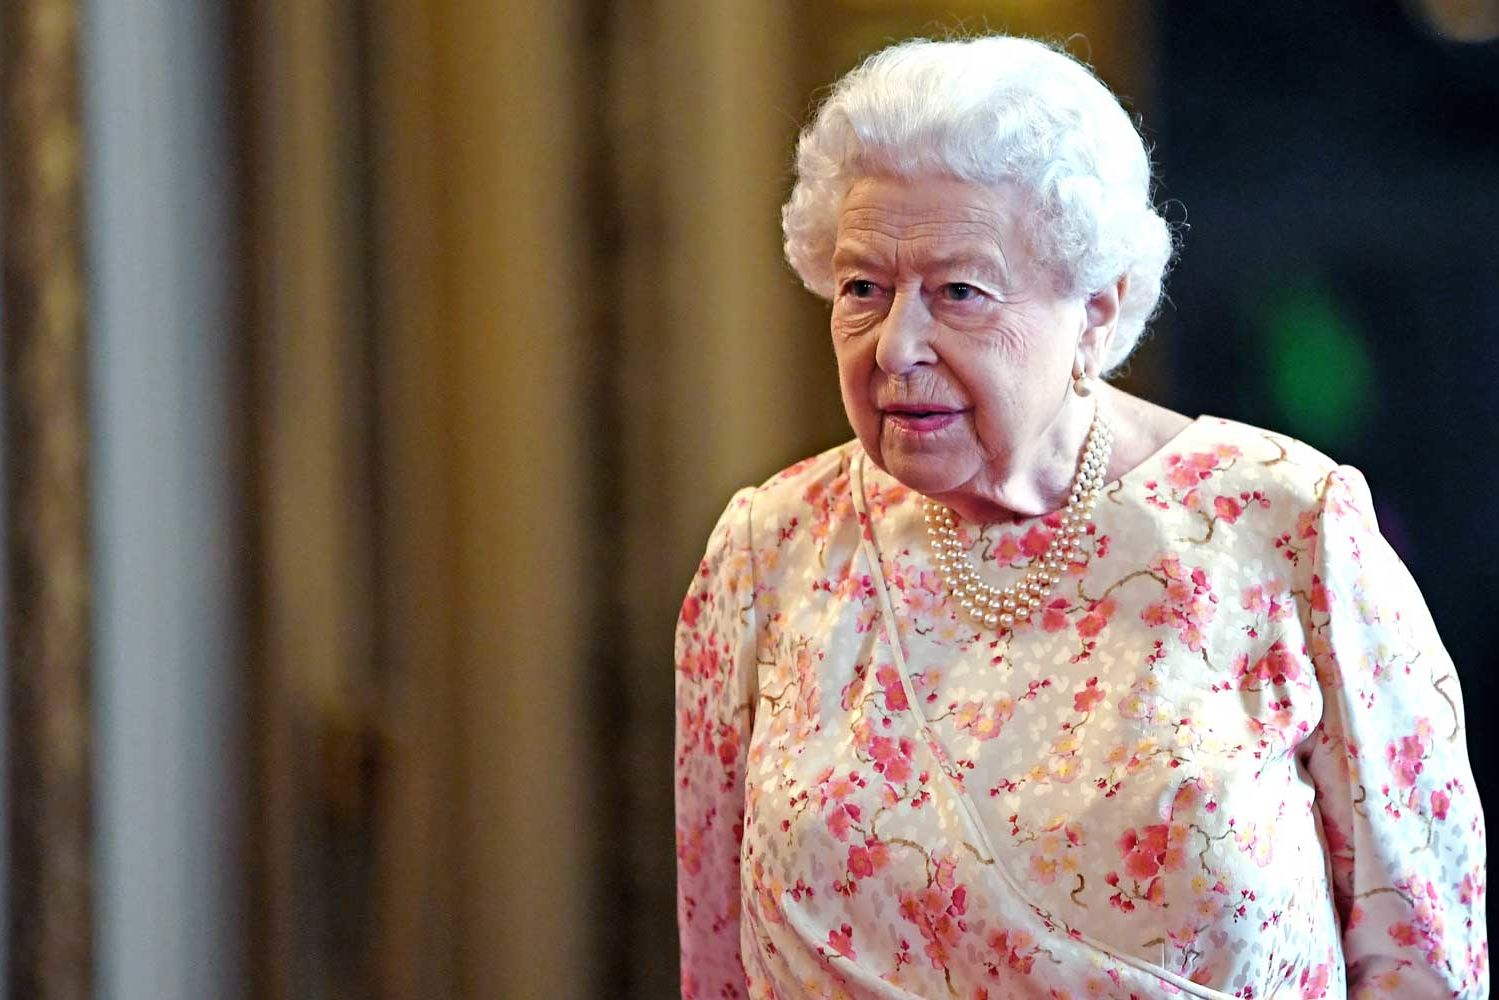 The Queen Is Looking for Her Very Own Chip or Joanna Gaines — and It Could Be You